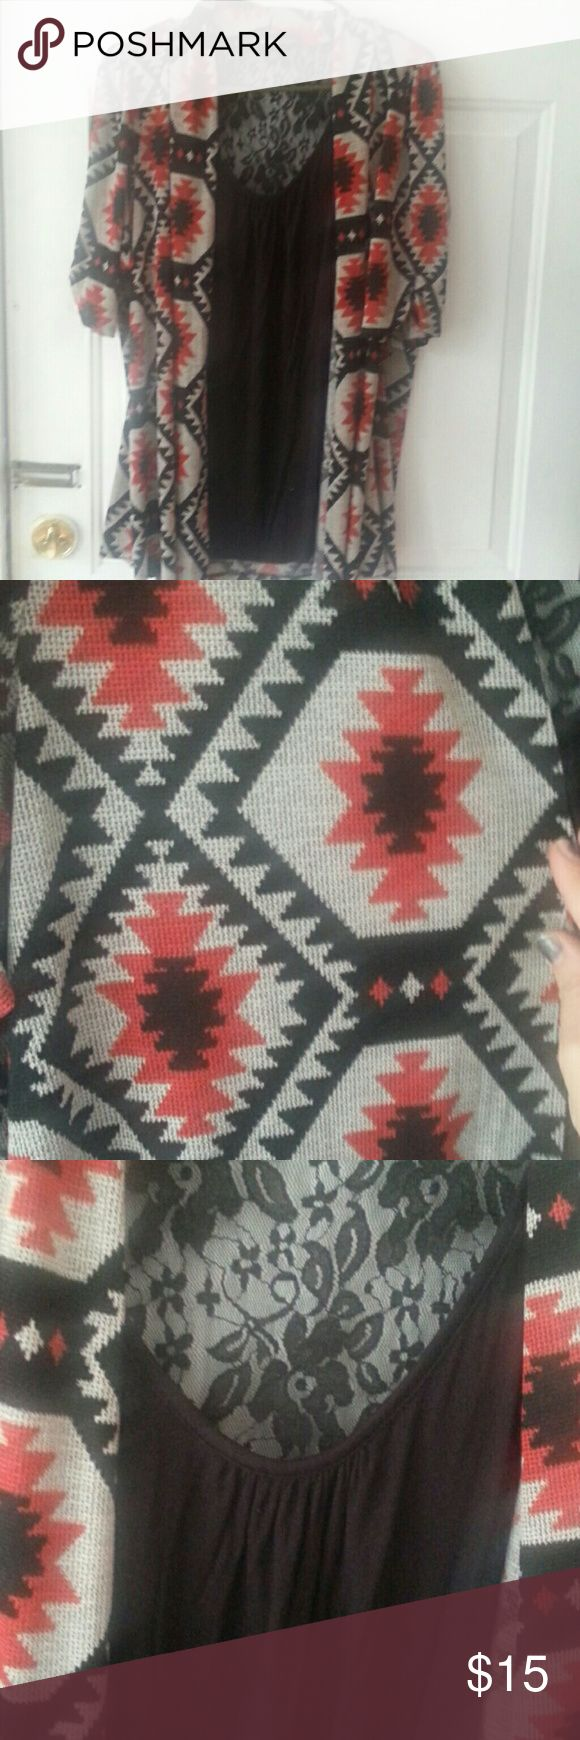 Cardigan with attached cami Aztec design cardingan with black lace cami HeartSoul Tops Blouses